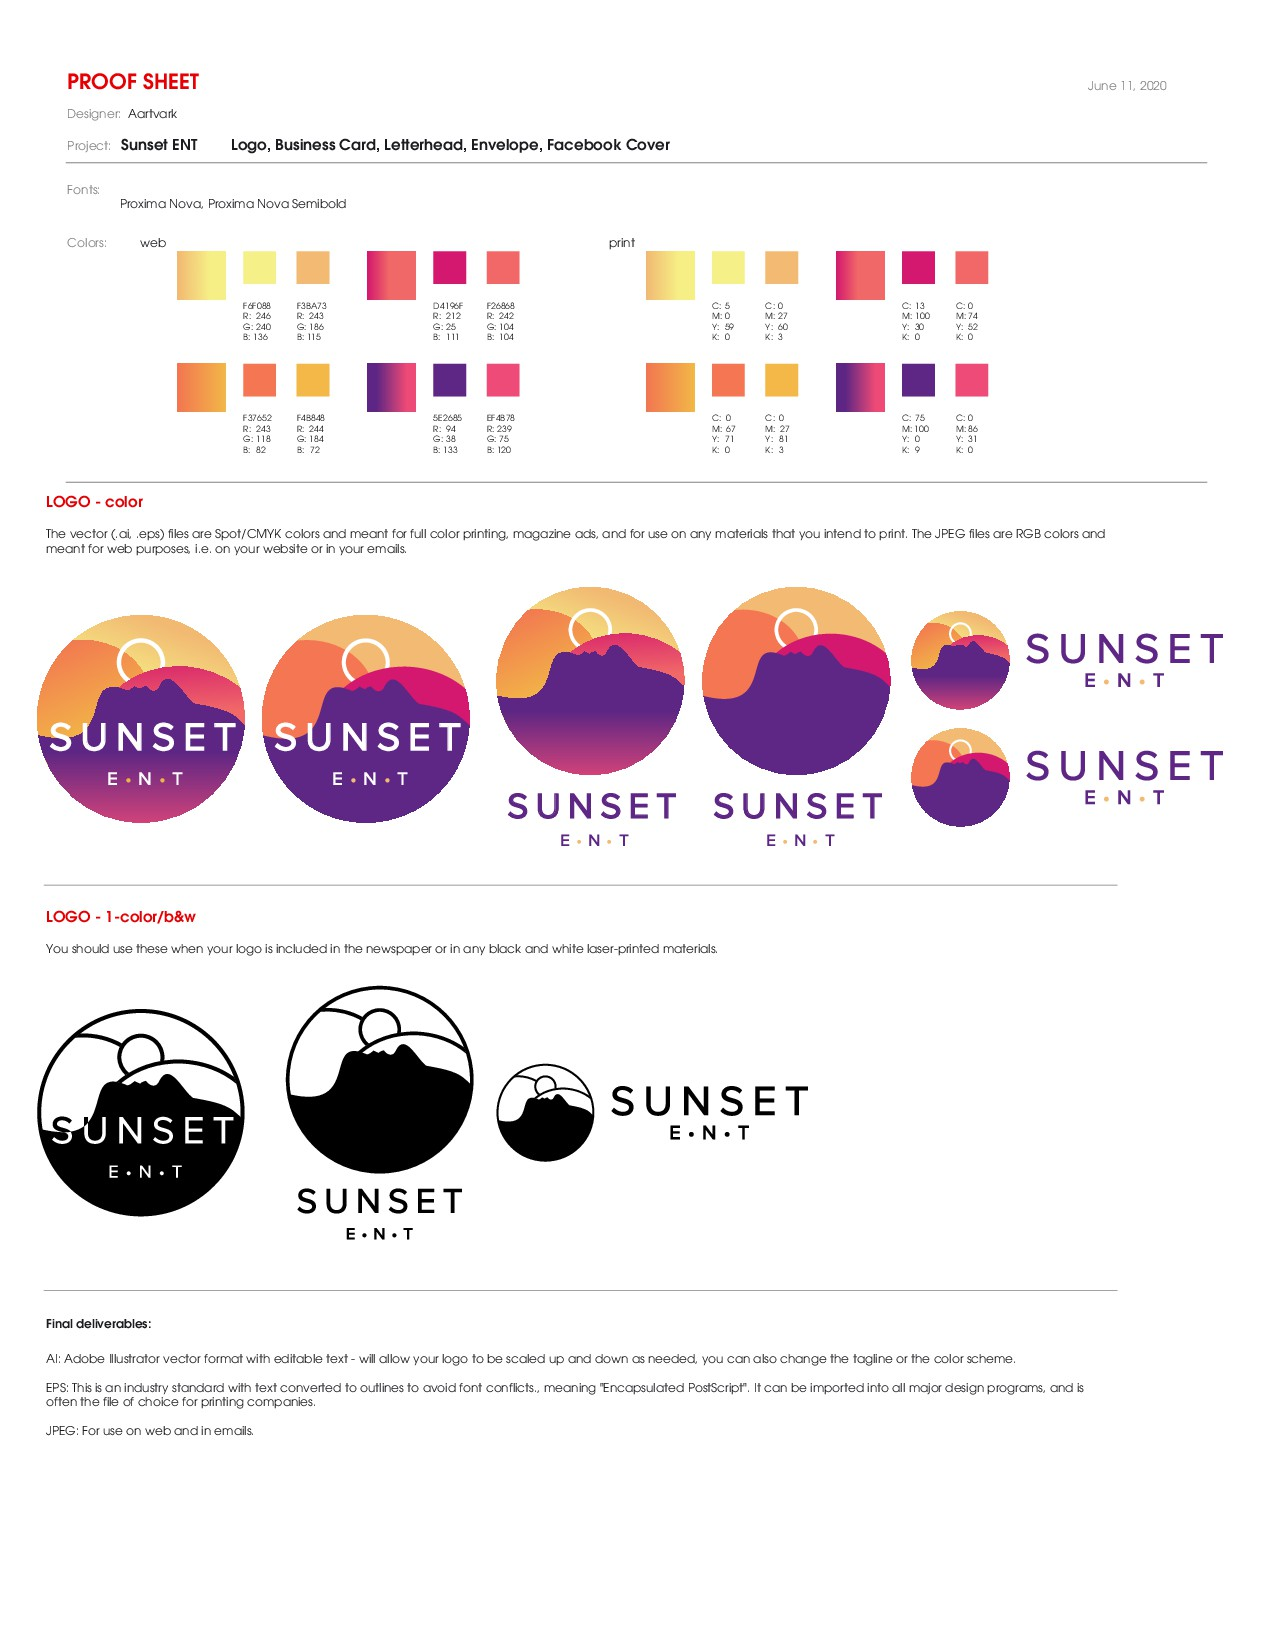 Sunset/nature-inspired design to advertise ear, nose and throat (otolaryngology) medical/surgical practice